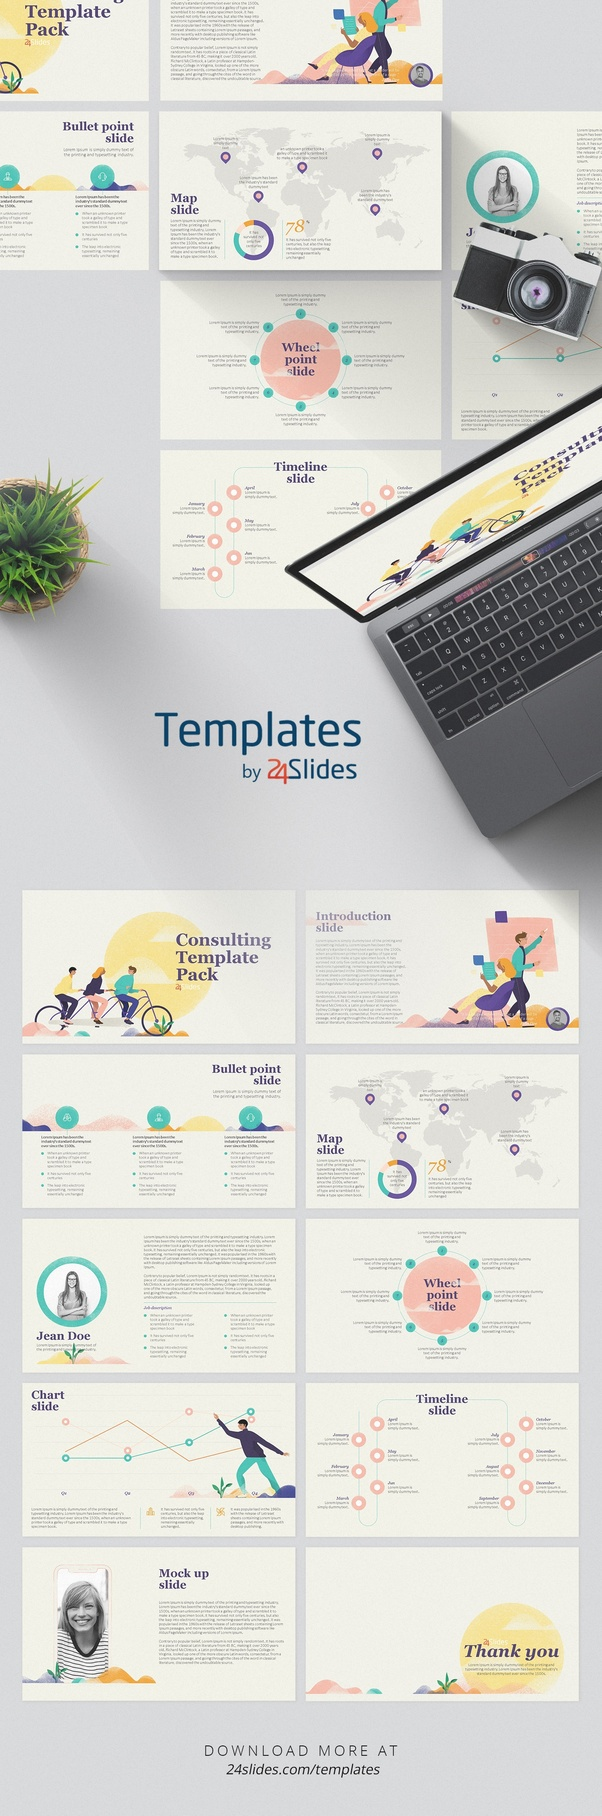 For More Awesome Presentation Templates Head Over To By 24slides And Grab Them Free